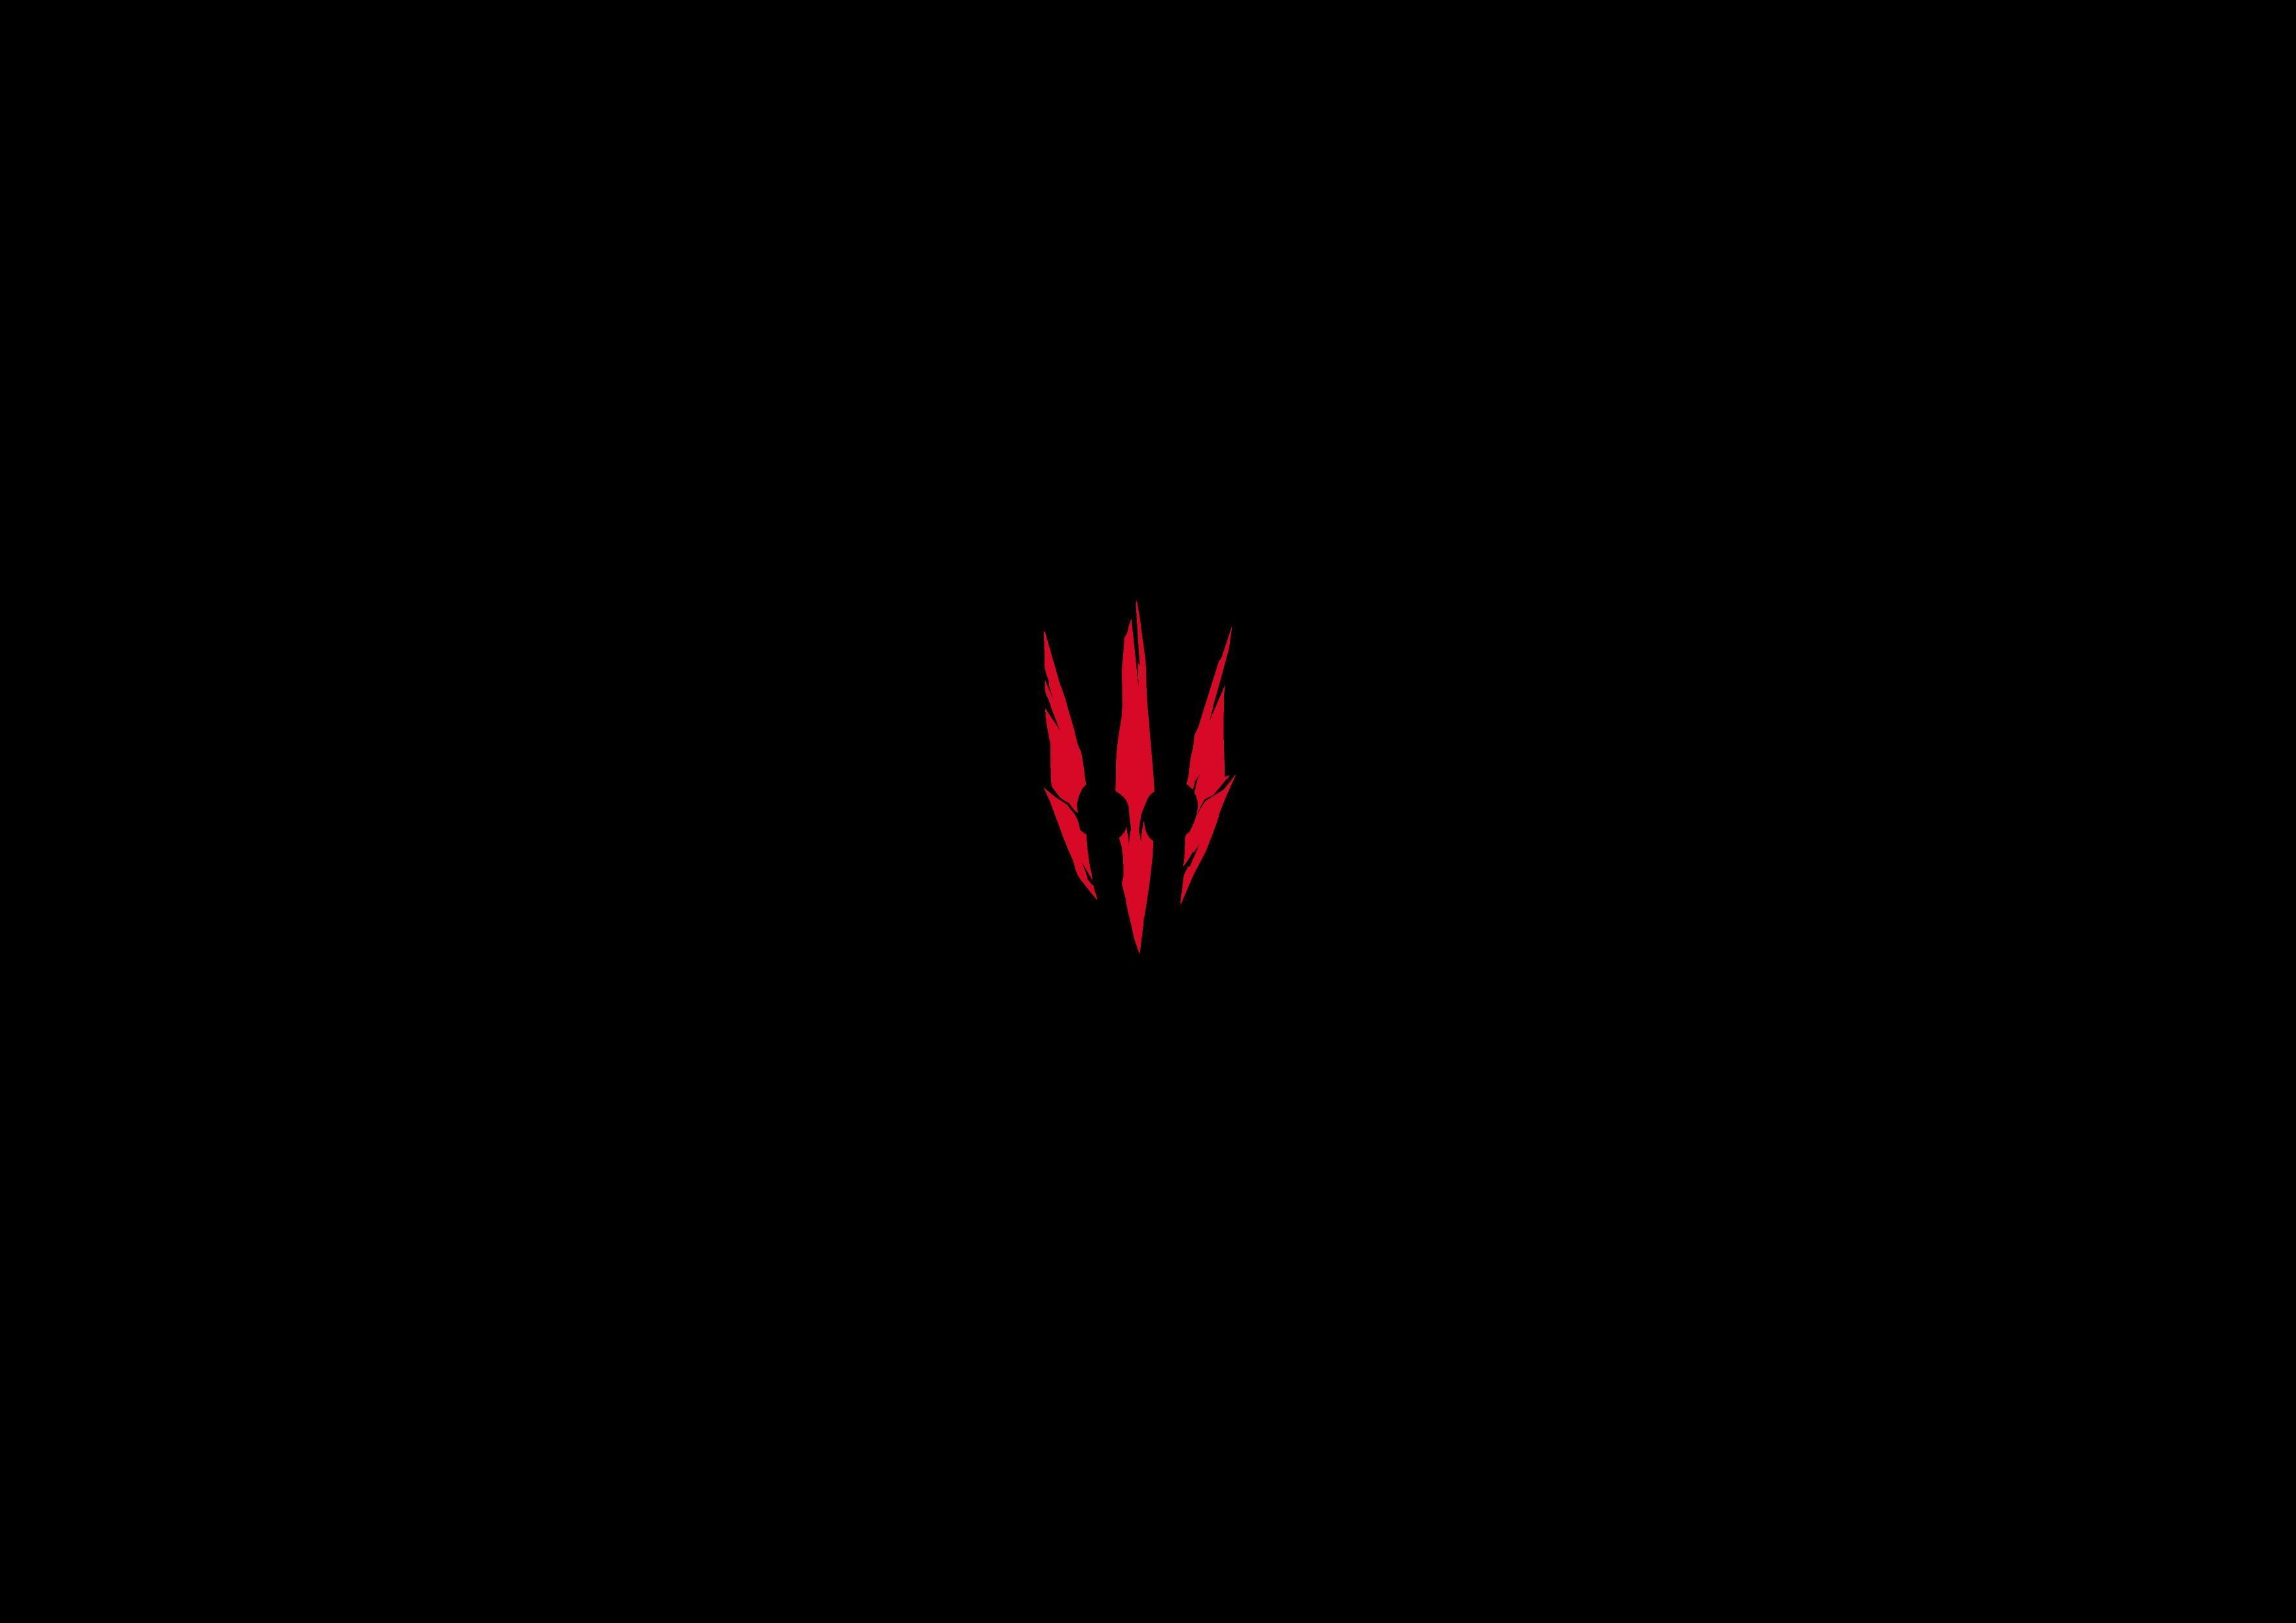 Witcher 3 Logo Wallpapers Top Free Witcher 3 Logo